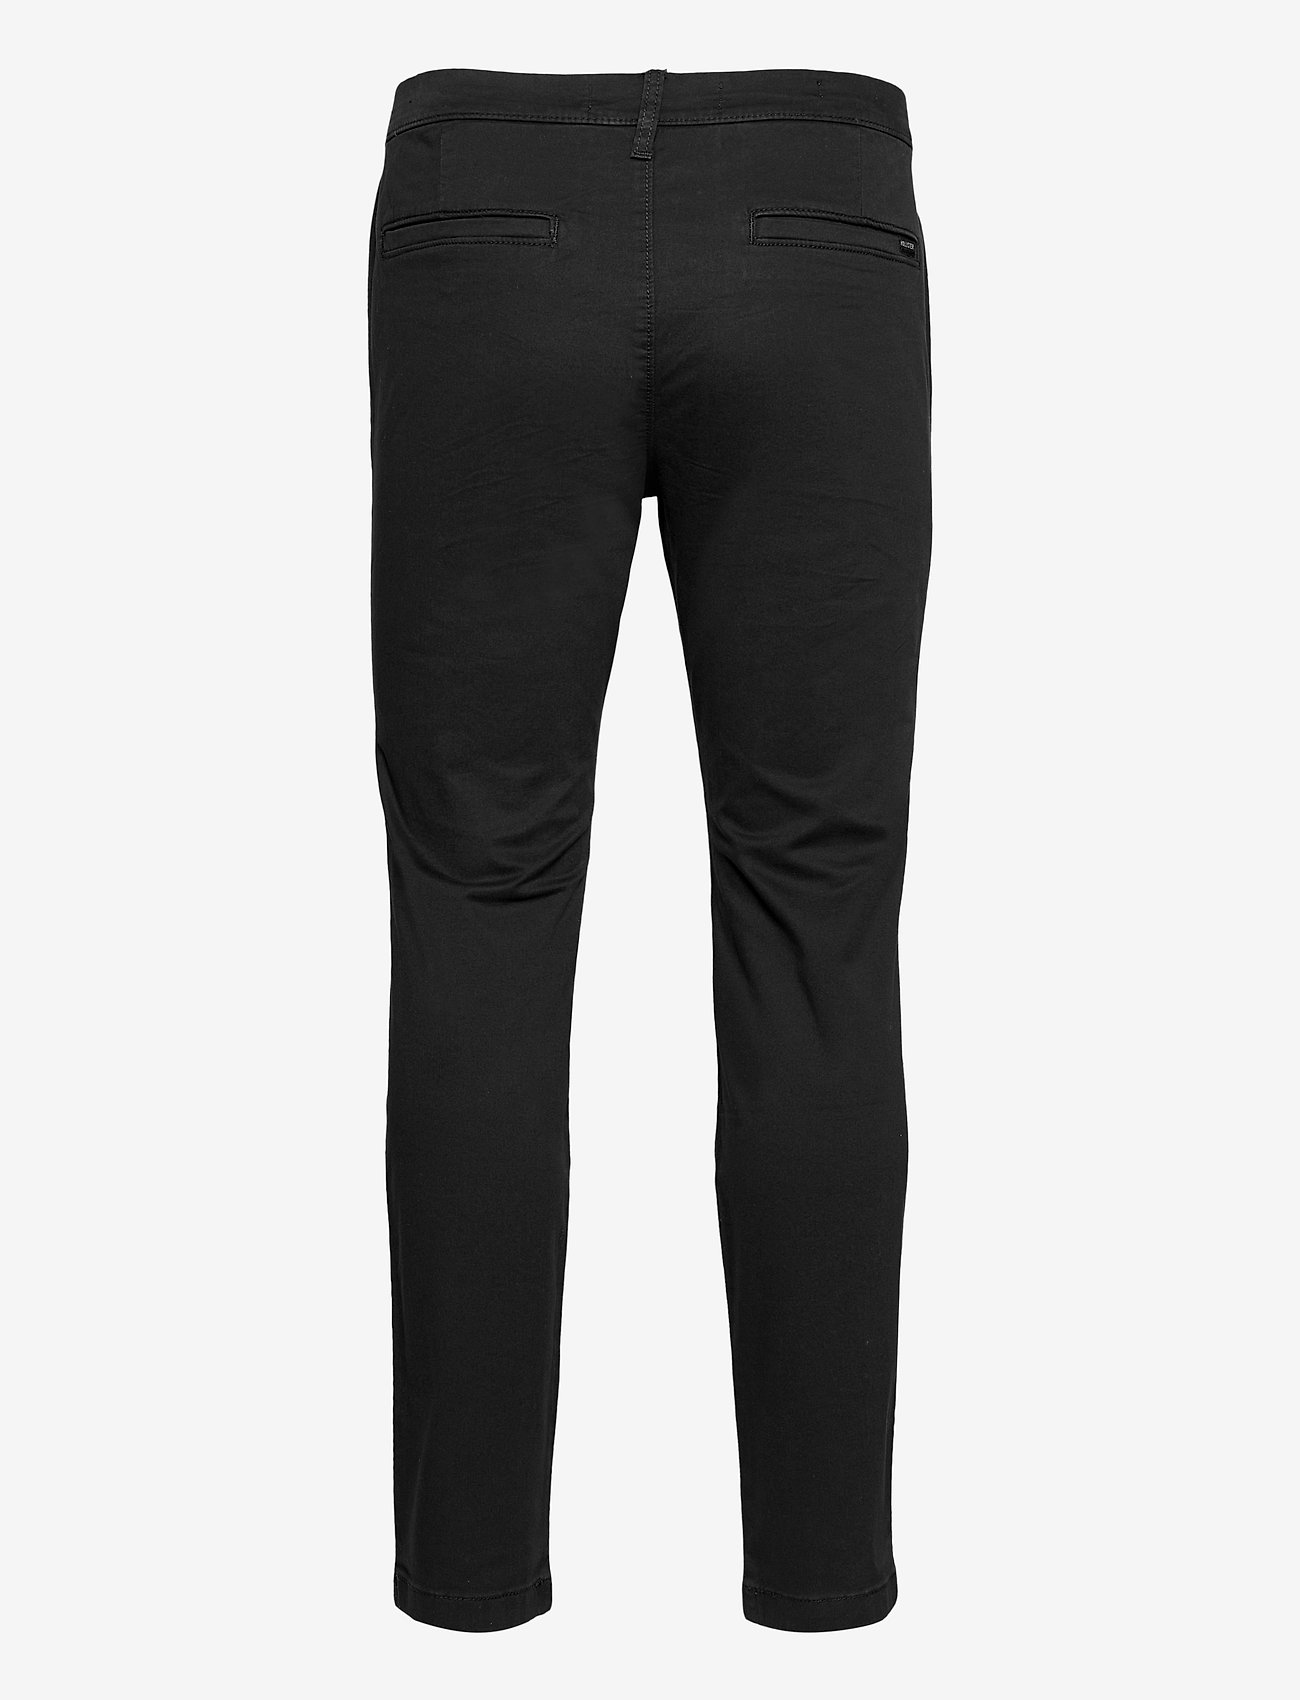 Hollister Chino Pants - Bukser BLACK OD - Menn Klær